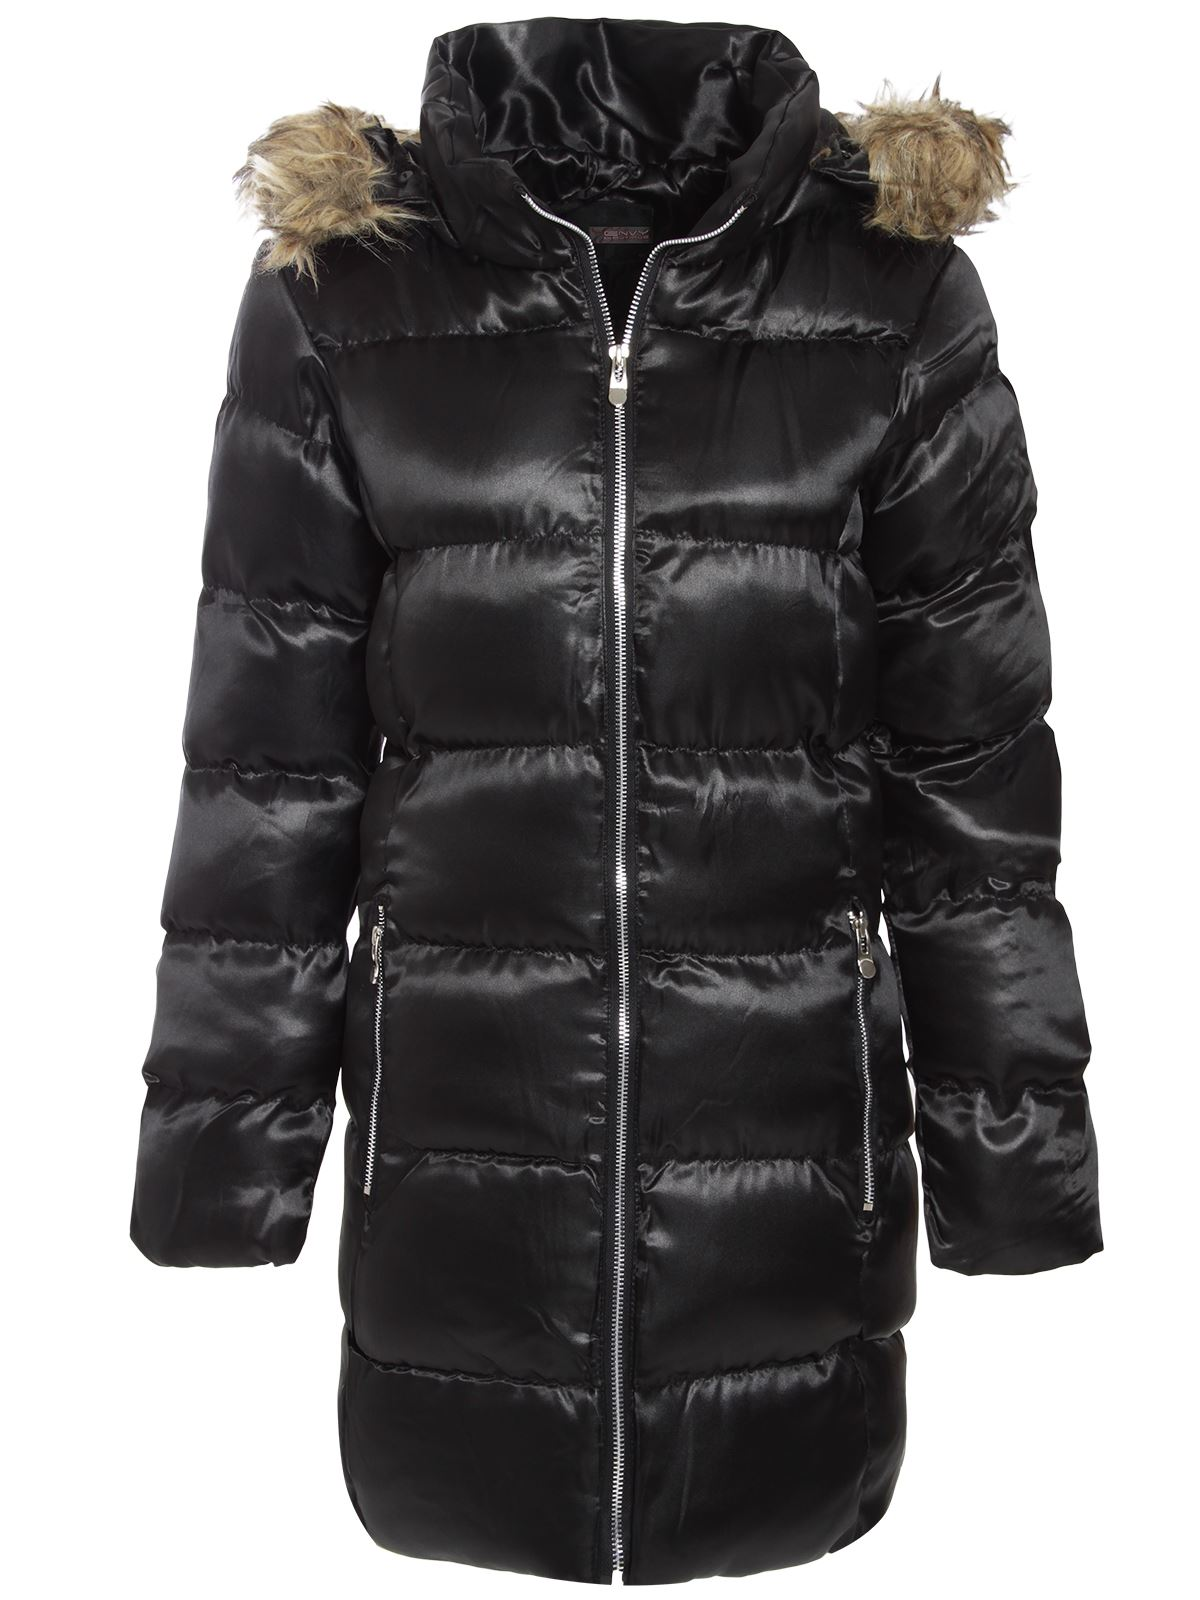 brave soul ladies womens puffer parka jacket fur hooded quilted padded